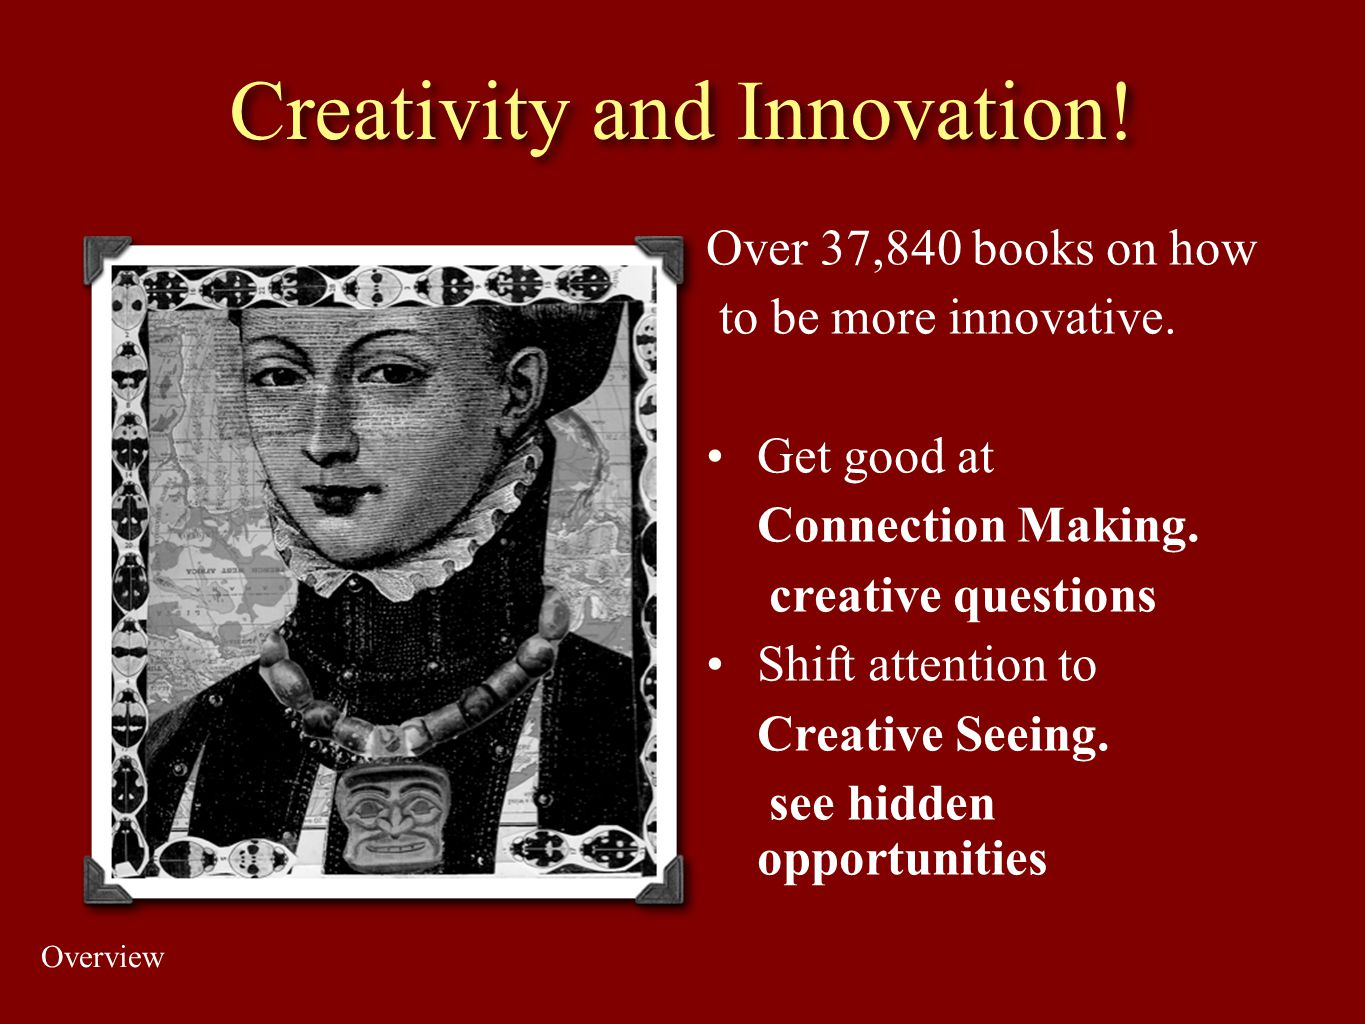 Creativity and Innovation! Over 37,840 books on how to be more innovative. Get good at Connection Making. creative questions Shift attention to Creati